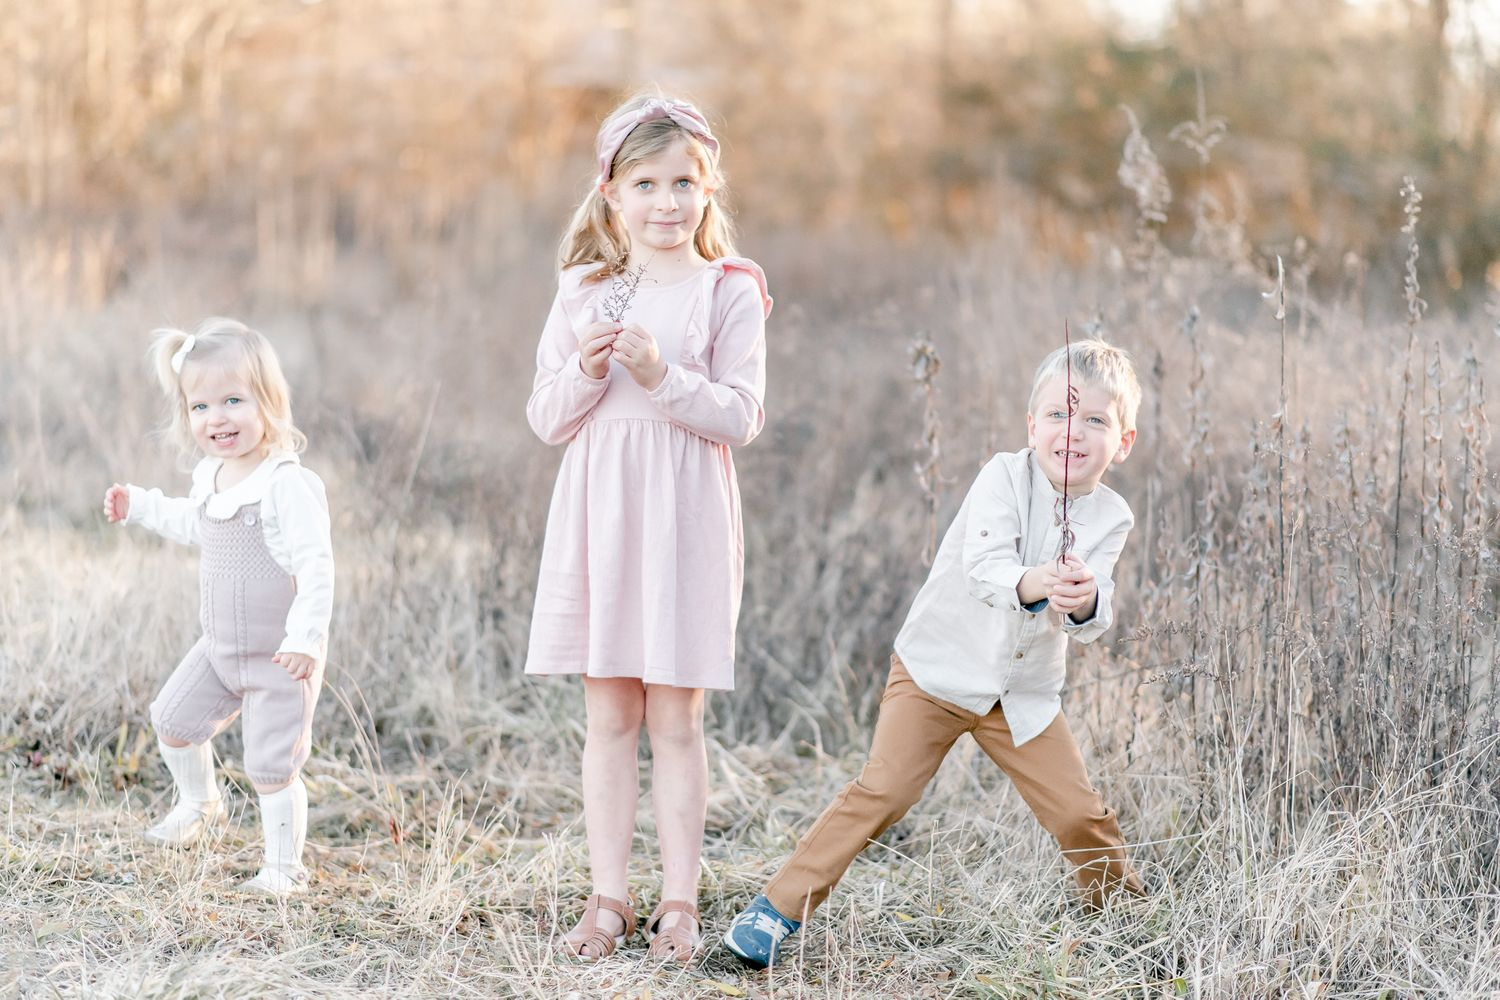 Siblings play in a field at sunset